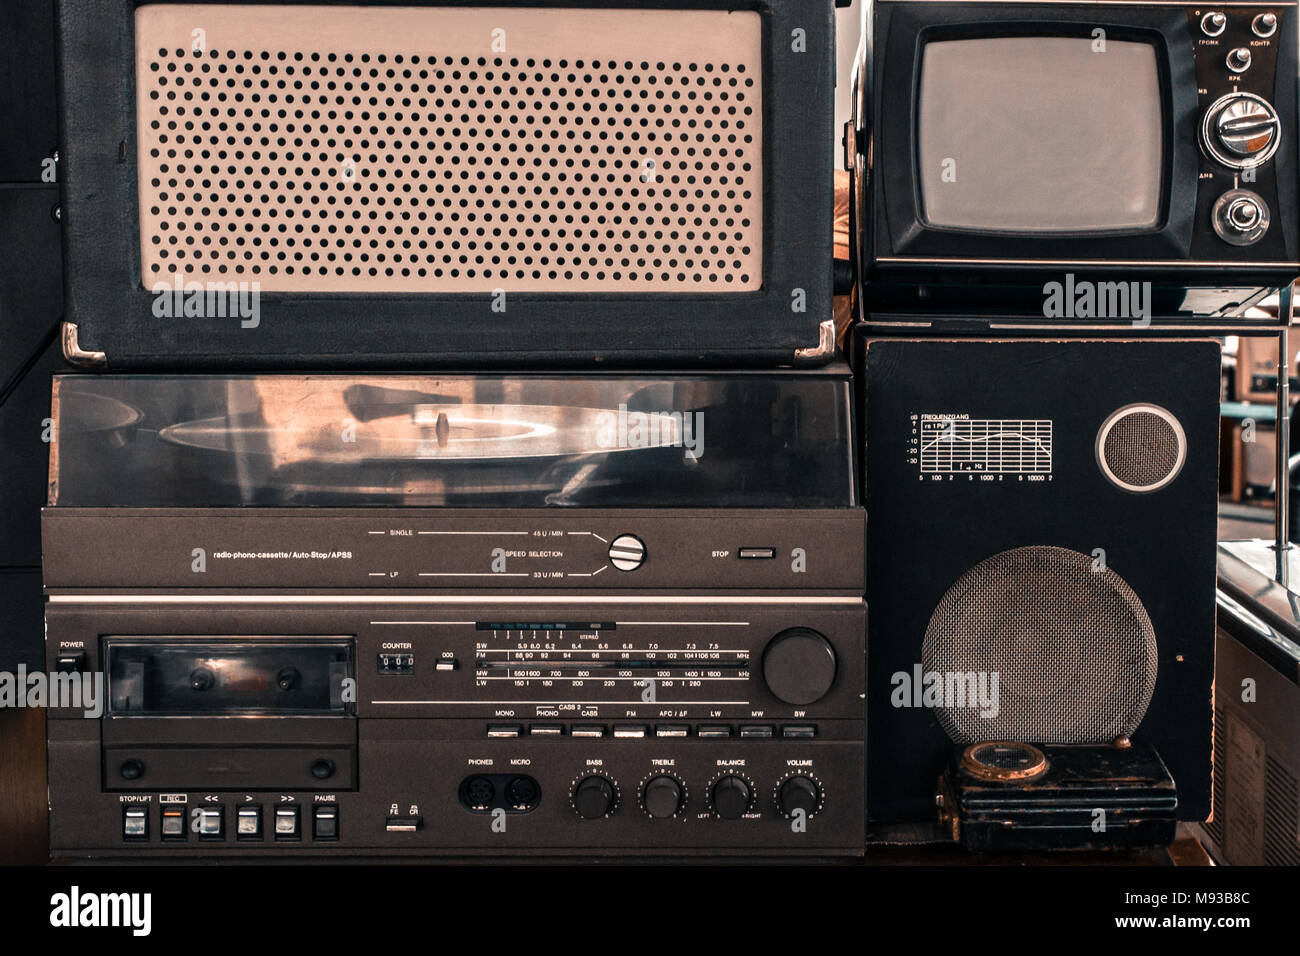 Old vintage audio system with radio, cassette tape recorder, record player, TV set, acoustic speakers - Stock Image